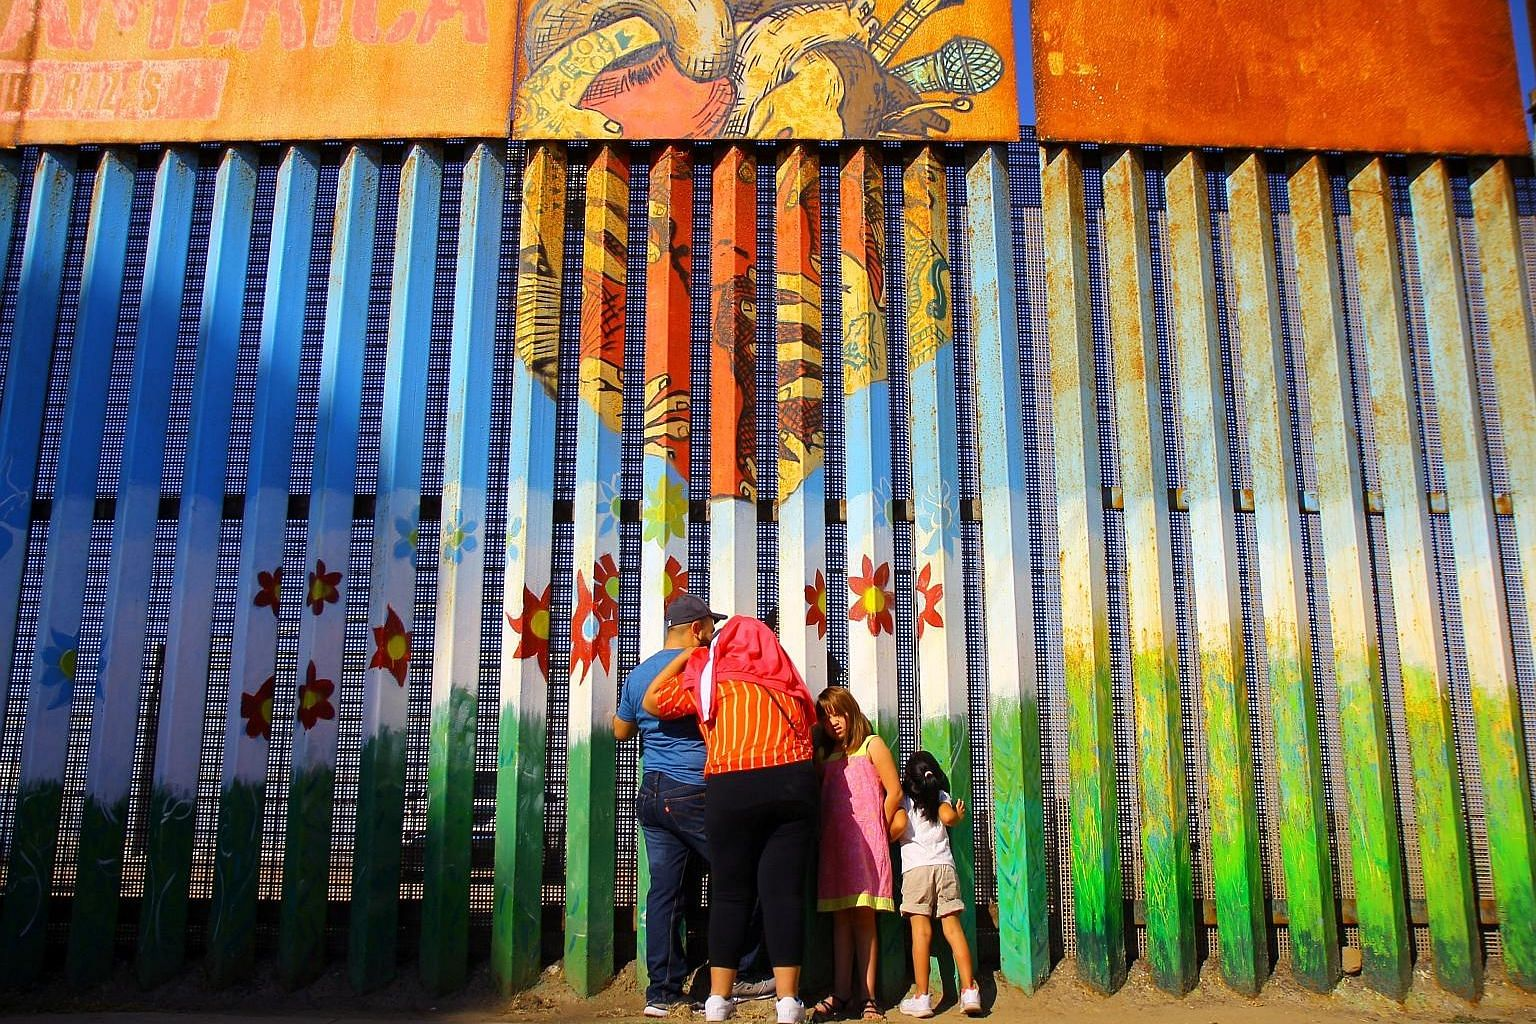 People in Tijuana, Mexico, speaking to relatives across the border in the US on Sunday. Mr Trump will have to ask Congress for the budget to build a wall - a tall order, say political analysts.